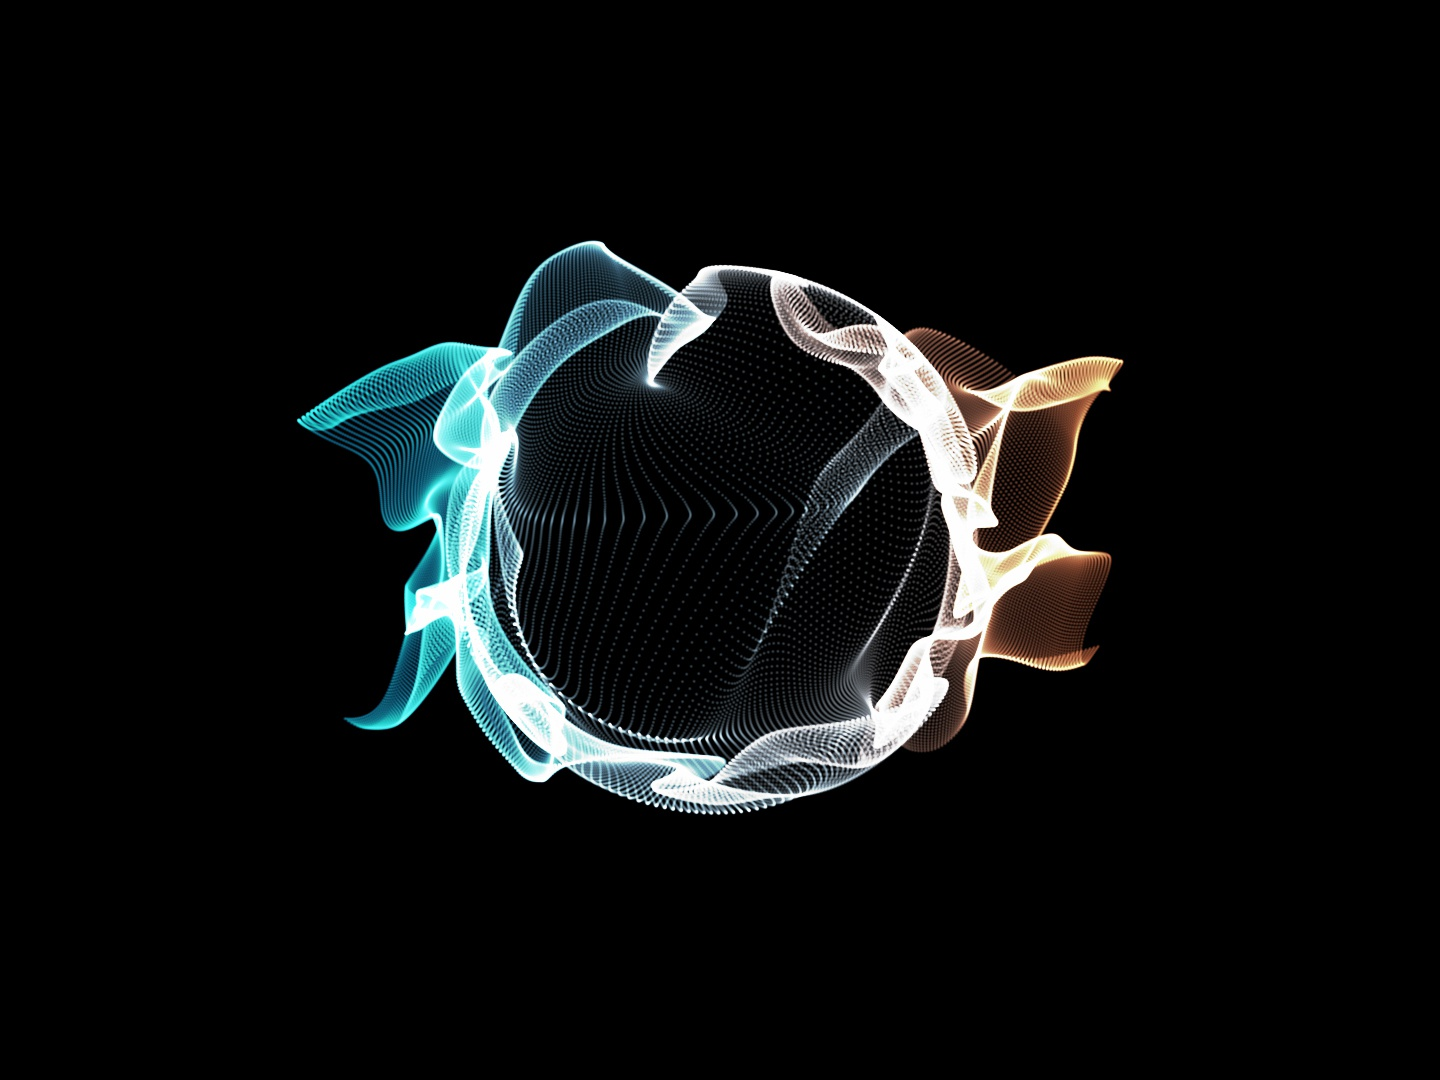 Circular Waveform redgiant waves circular waveform motionlovers motion design mograph shapes motiongraphics trapcode particles form energy design art animation art after affects abstract art motion art design animation